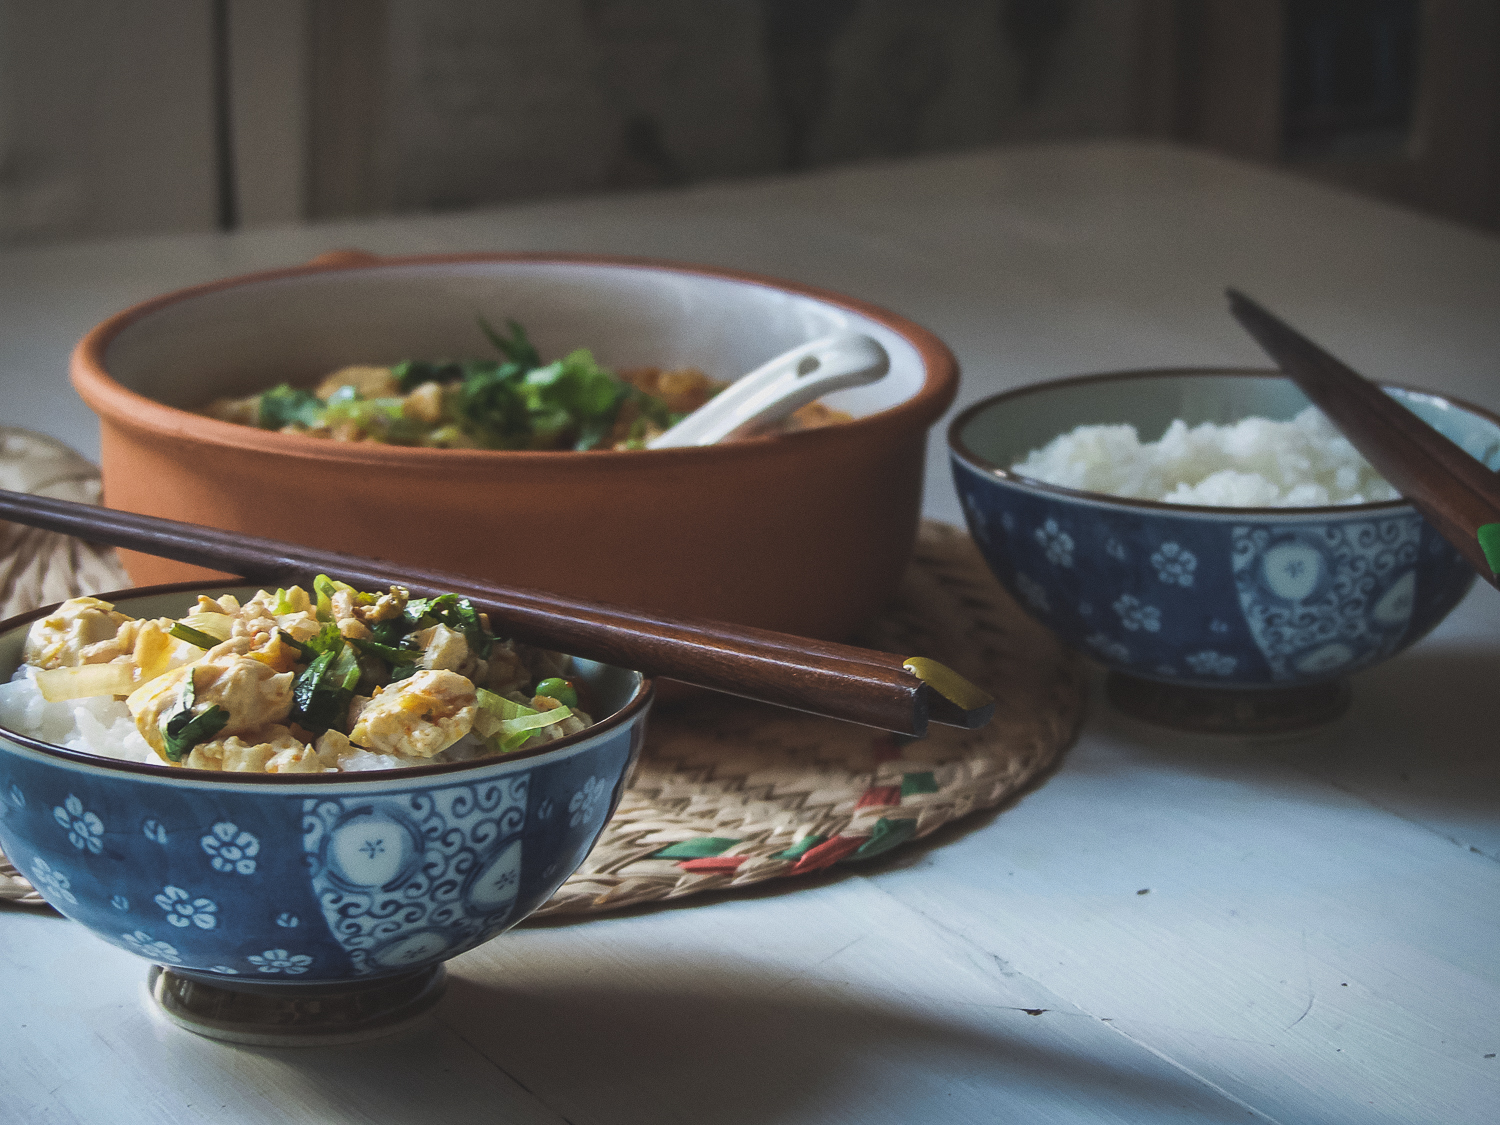 Mapo Tofu (The vegan version) - serve with a bowl of white rice to get the best out of this wonderful tofu dish